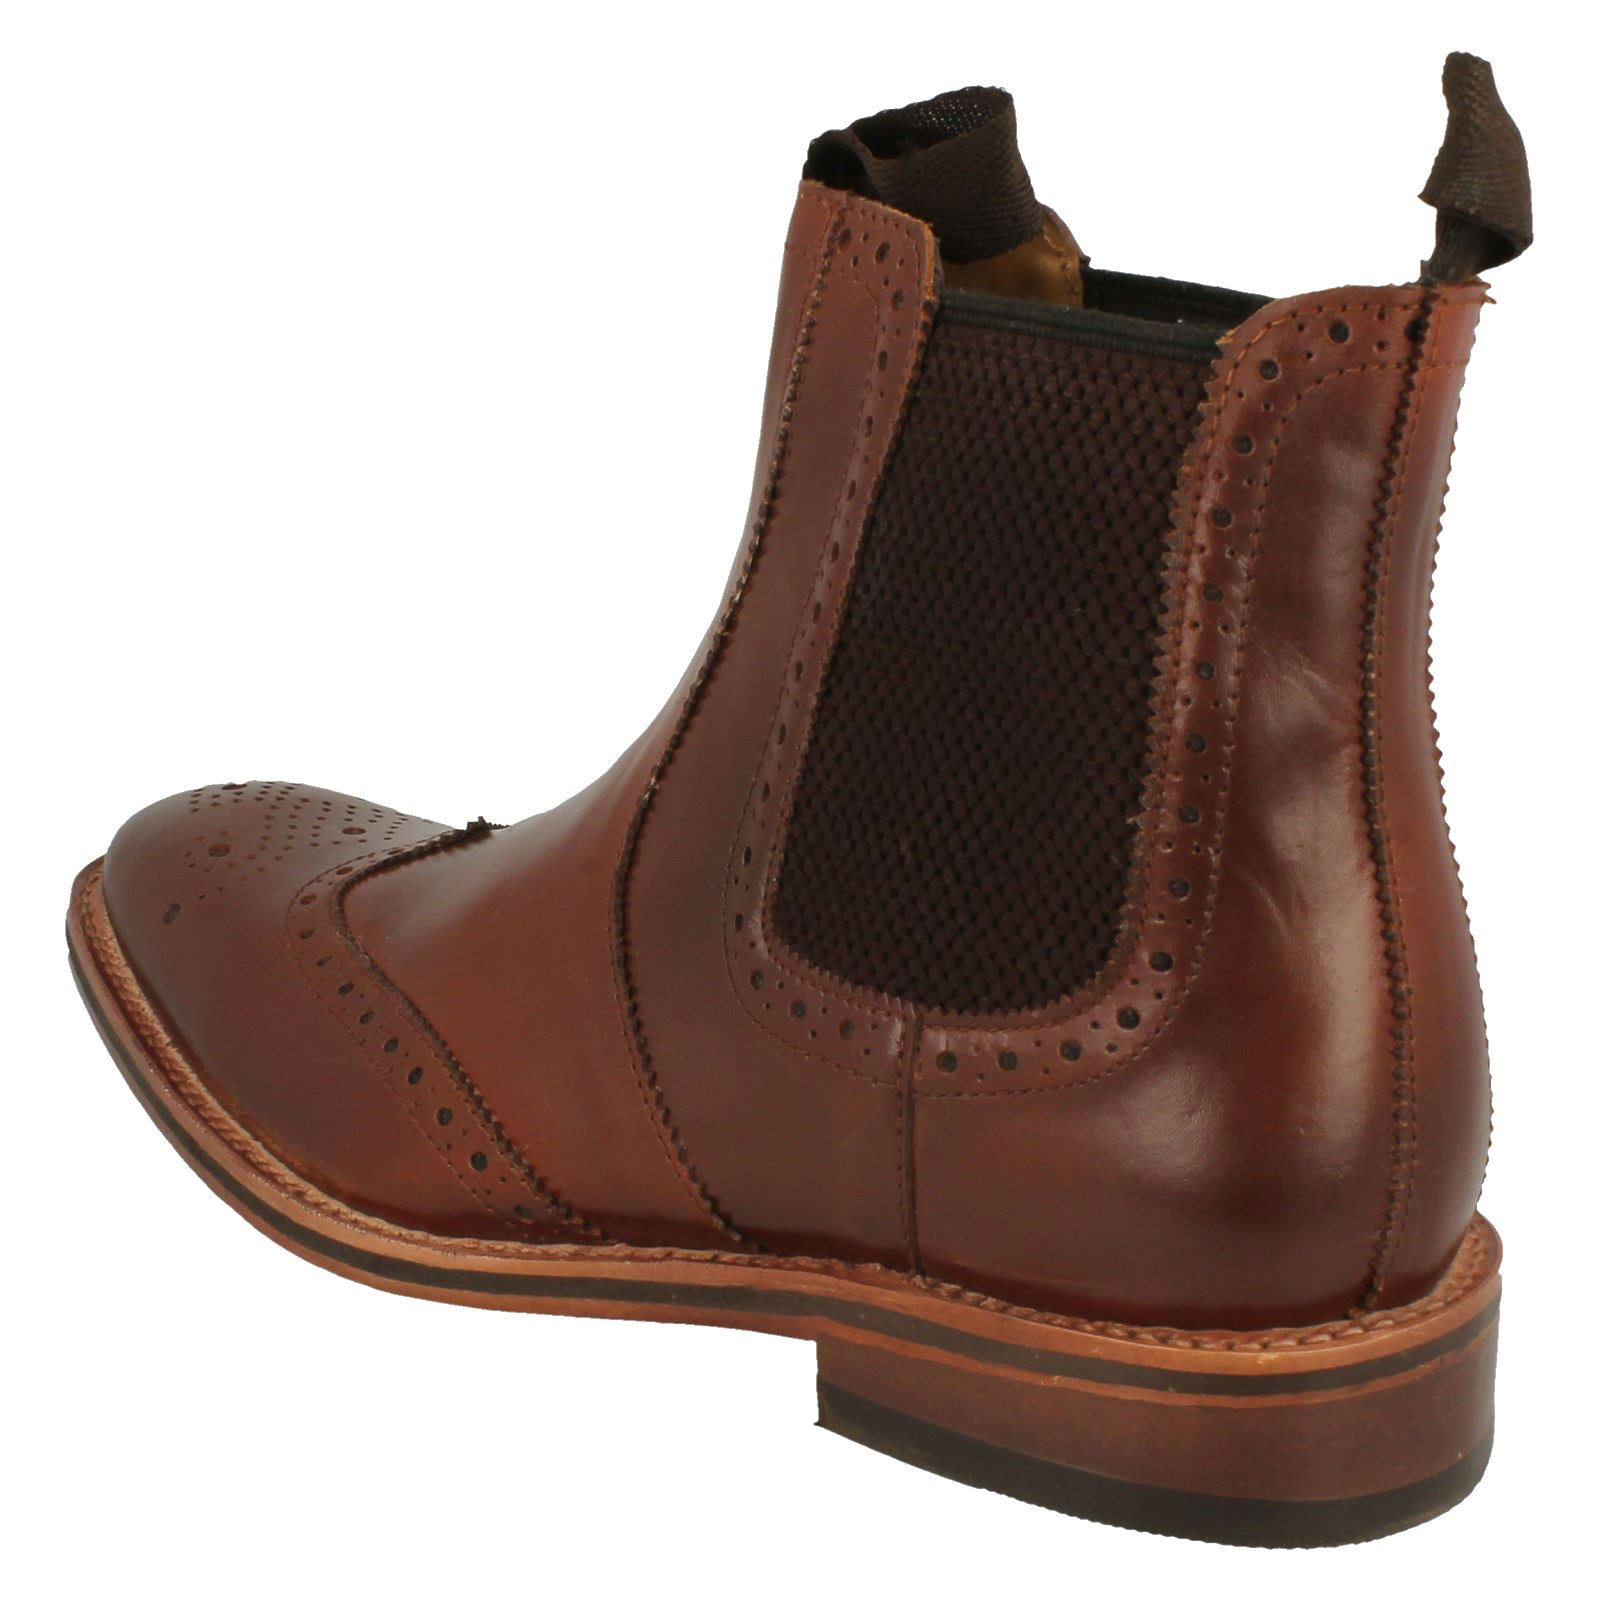 Mens-Catesby-Ankle-Boots-MCATESCW158T thumbnail 14